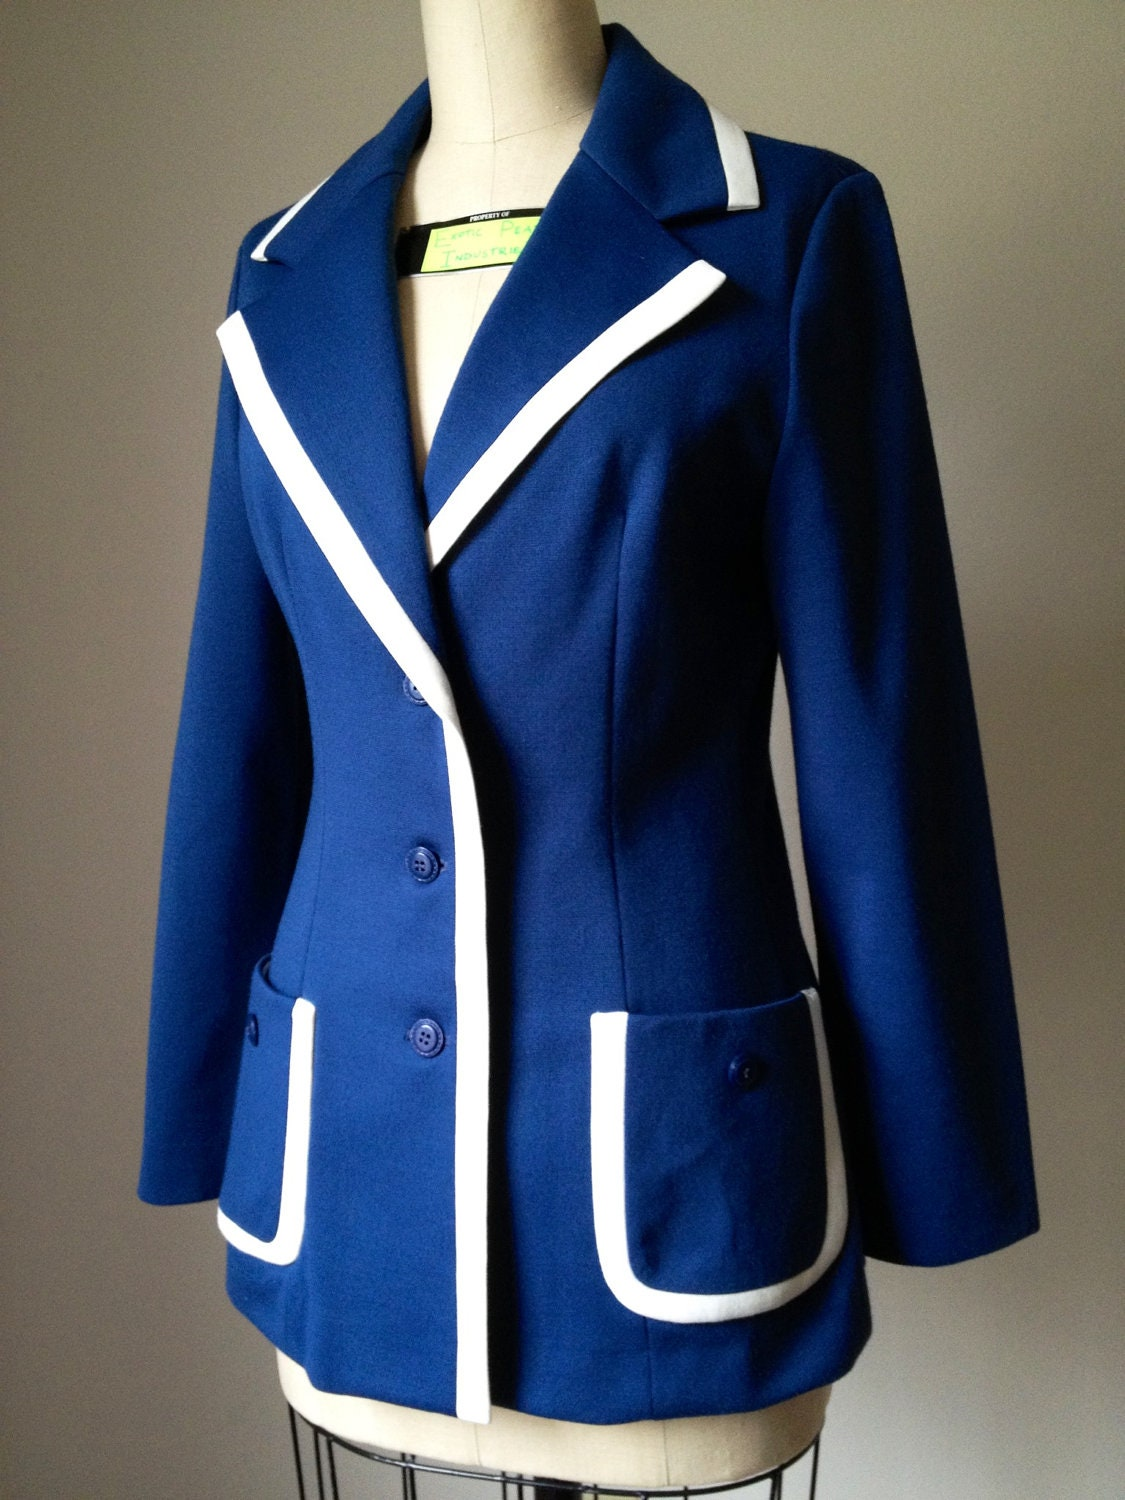 Find great deals on eBay for navy blazer white trim. Shop with confidence.